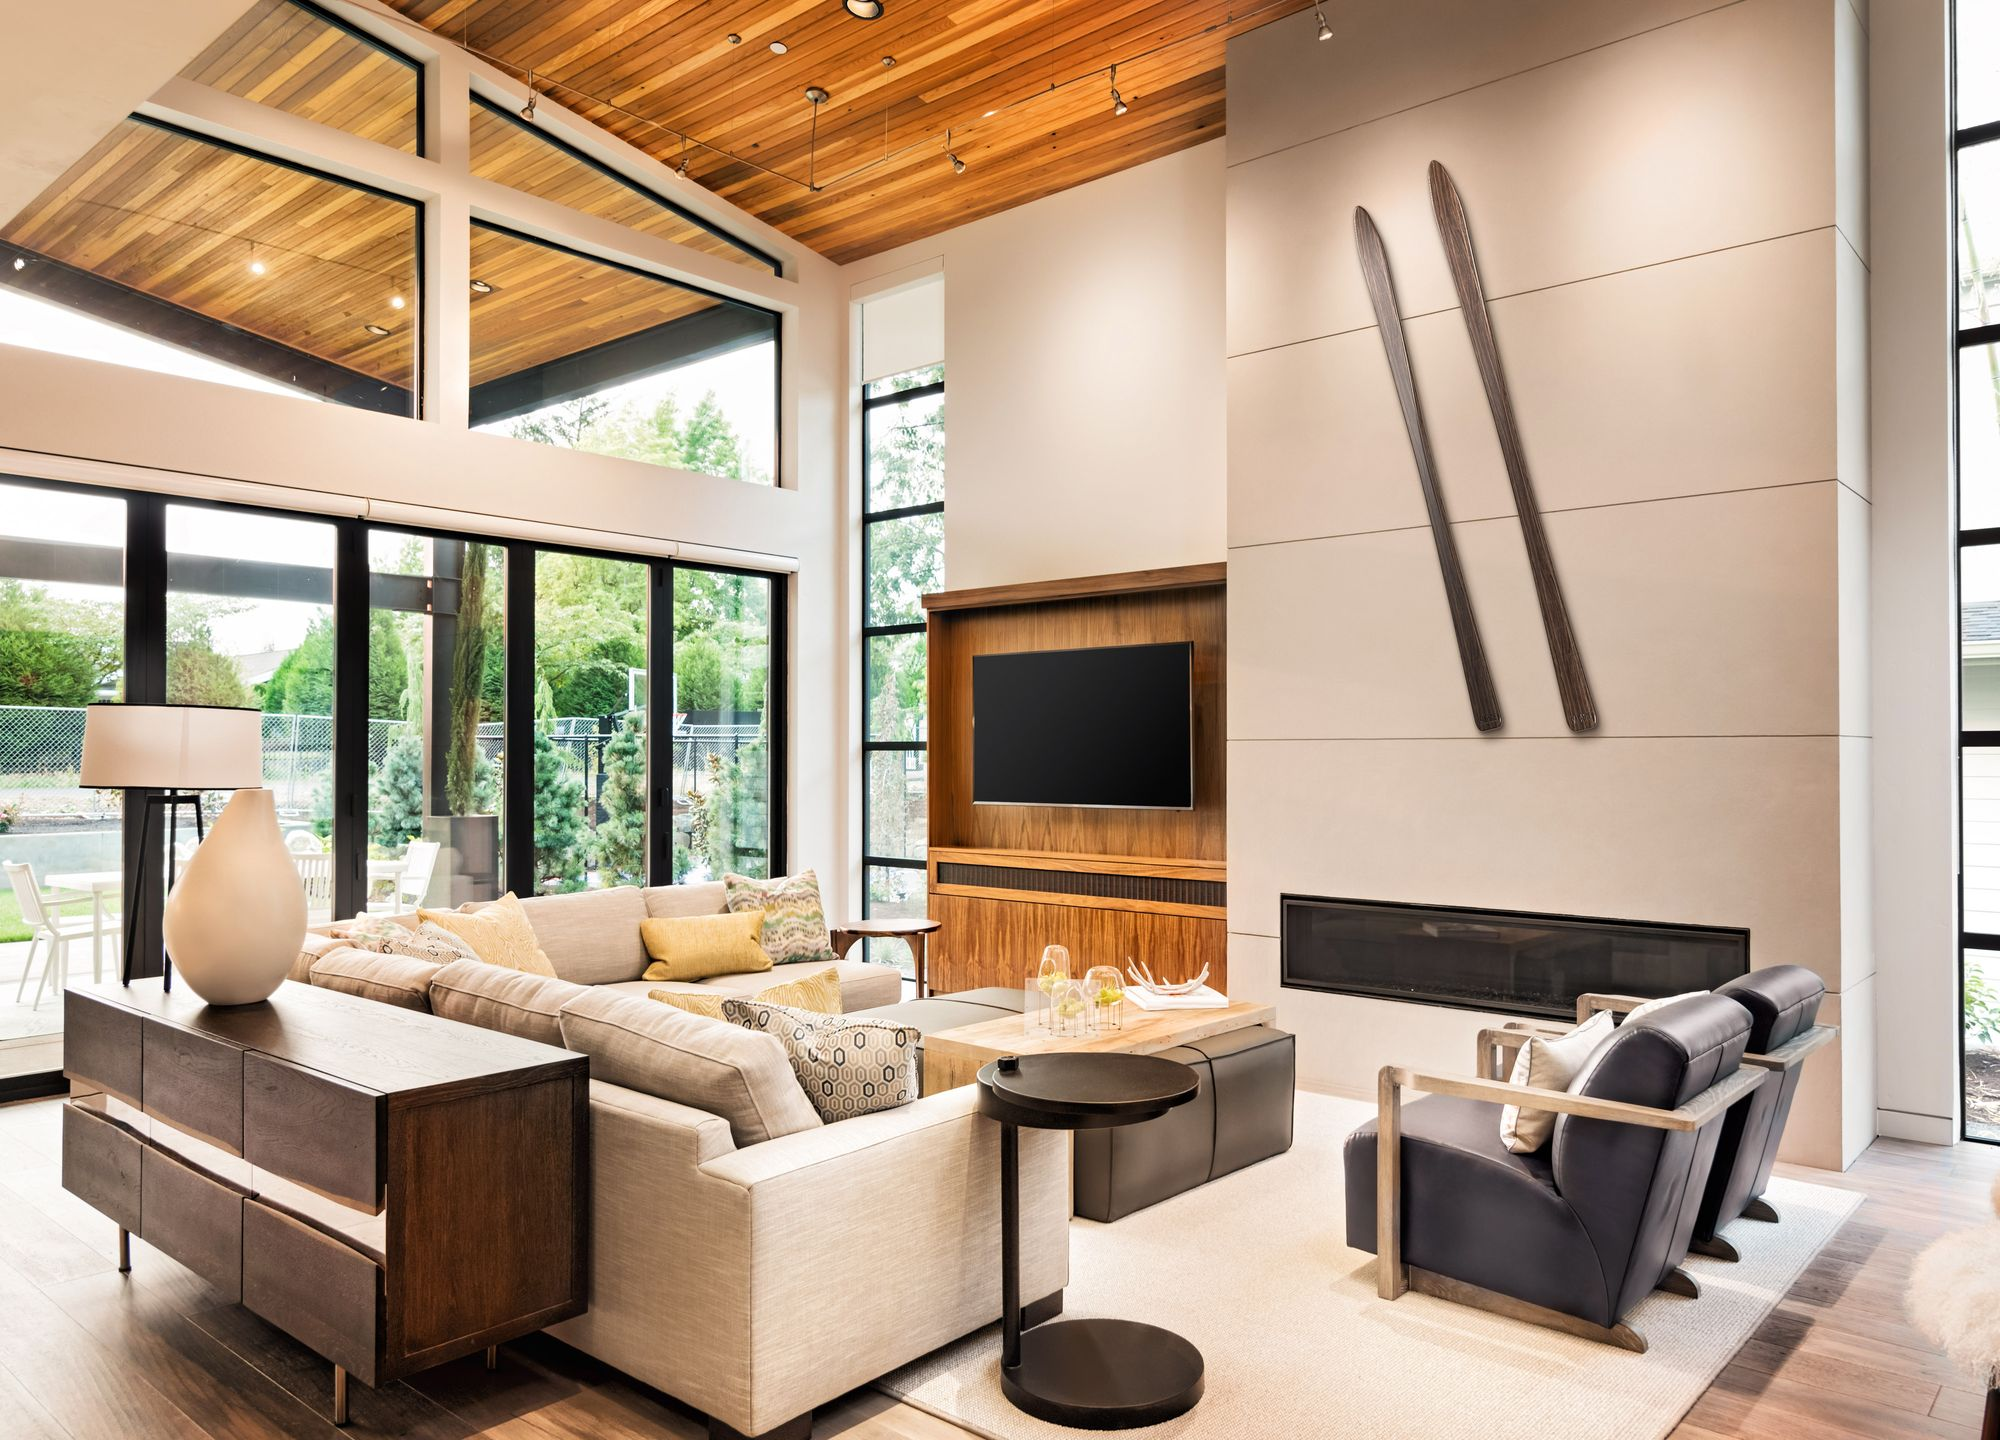 A beautiful modern living room with two walnut Shot Skis hung diagonally above the fireplace